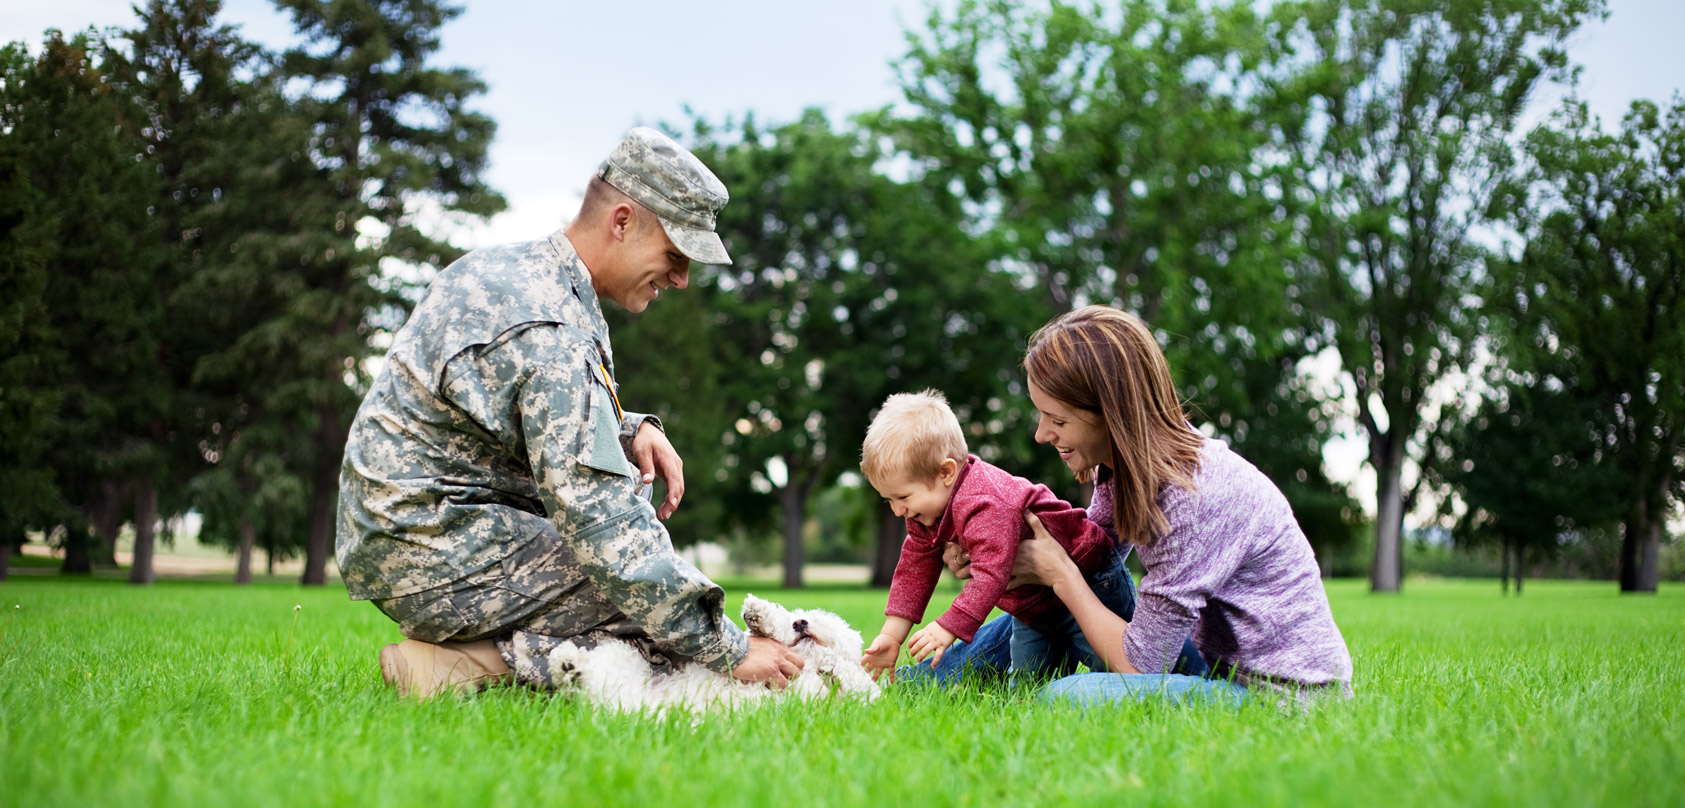 A man is dressed in a military outfit, petting his dog. His wife and small child are close by